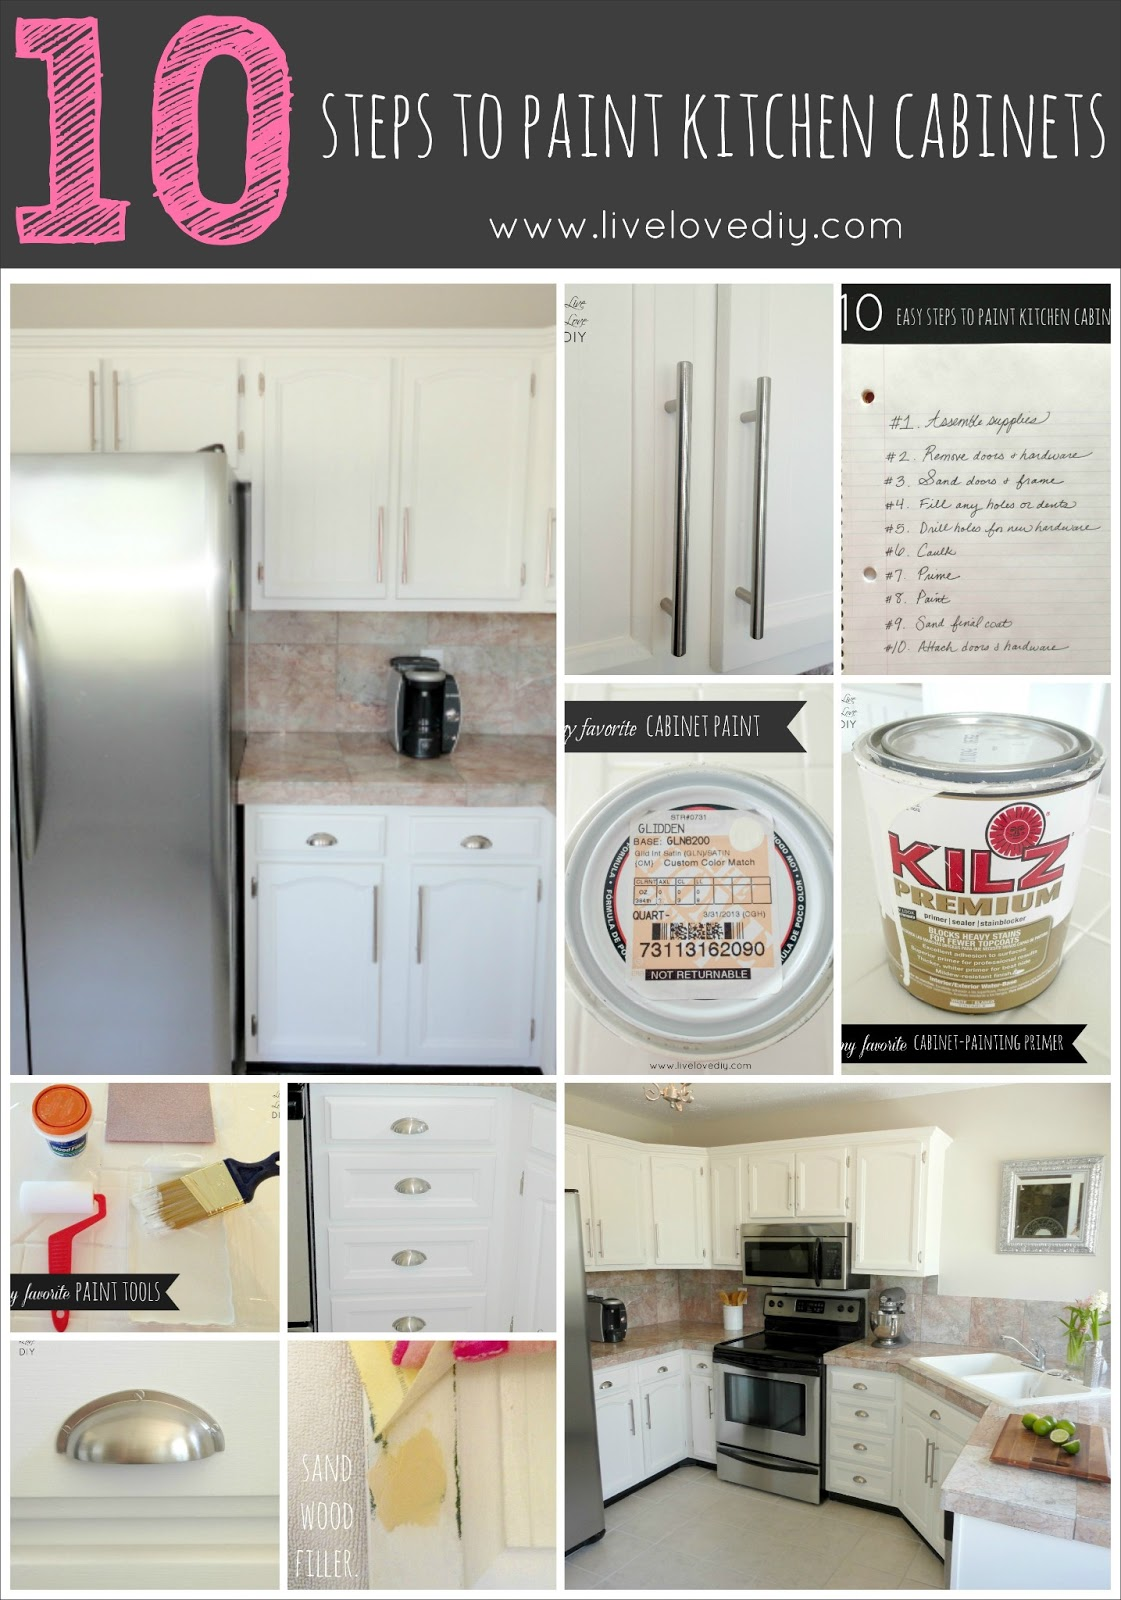 White Kitchen Cupboard Paint Livelovediy How To Paint Kitchen Cabinets In 10 Easy Steps